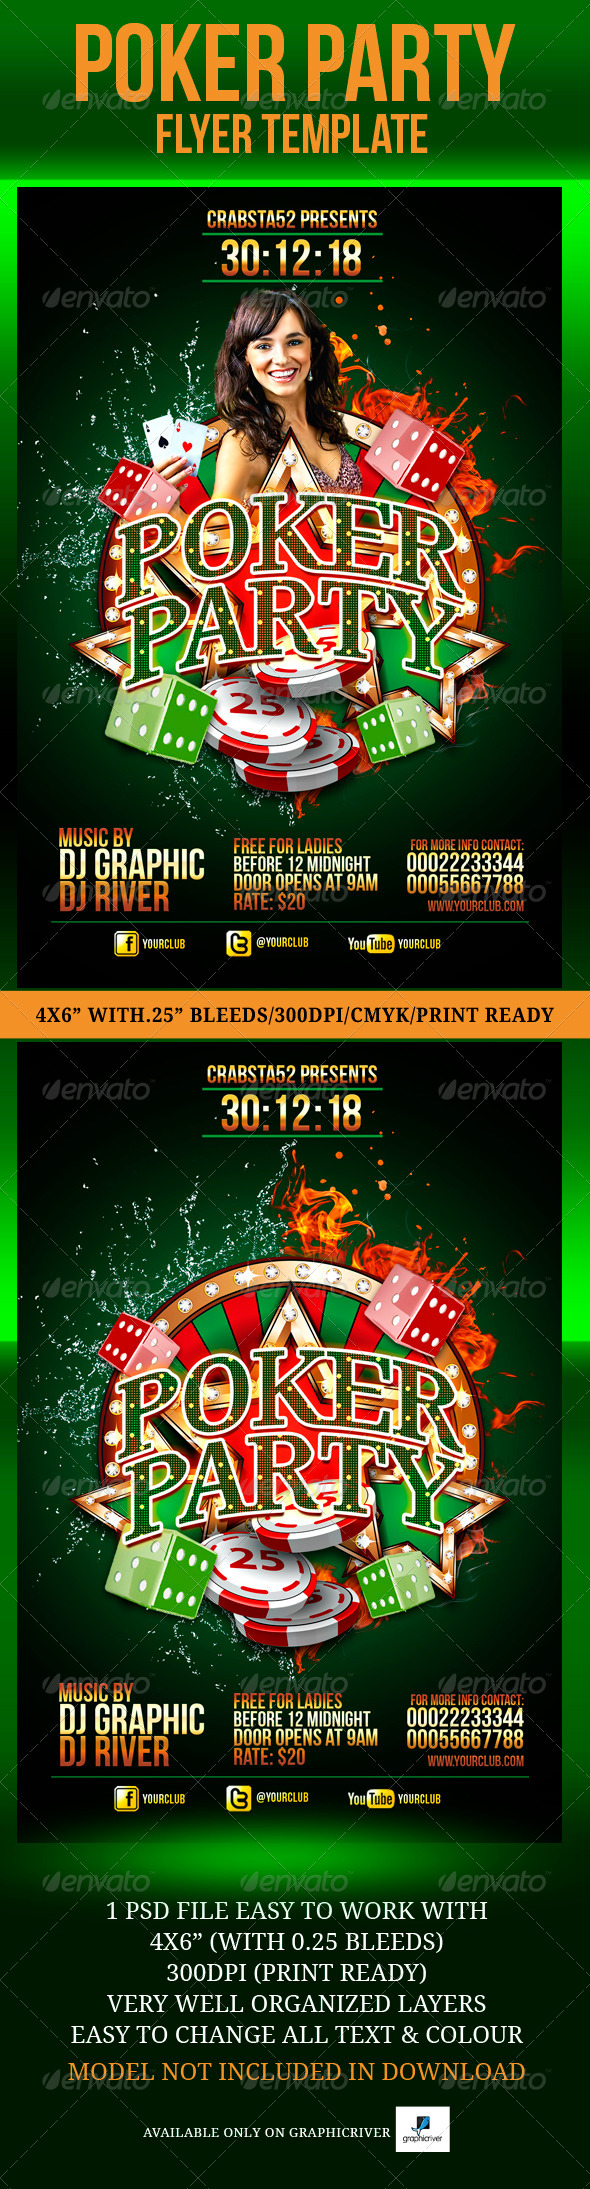 Poker Party Flyer Template